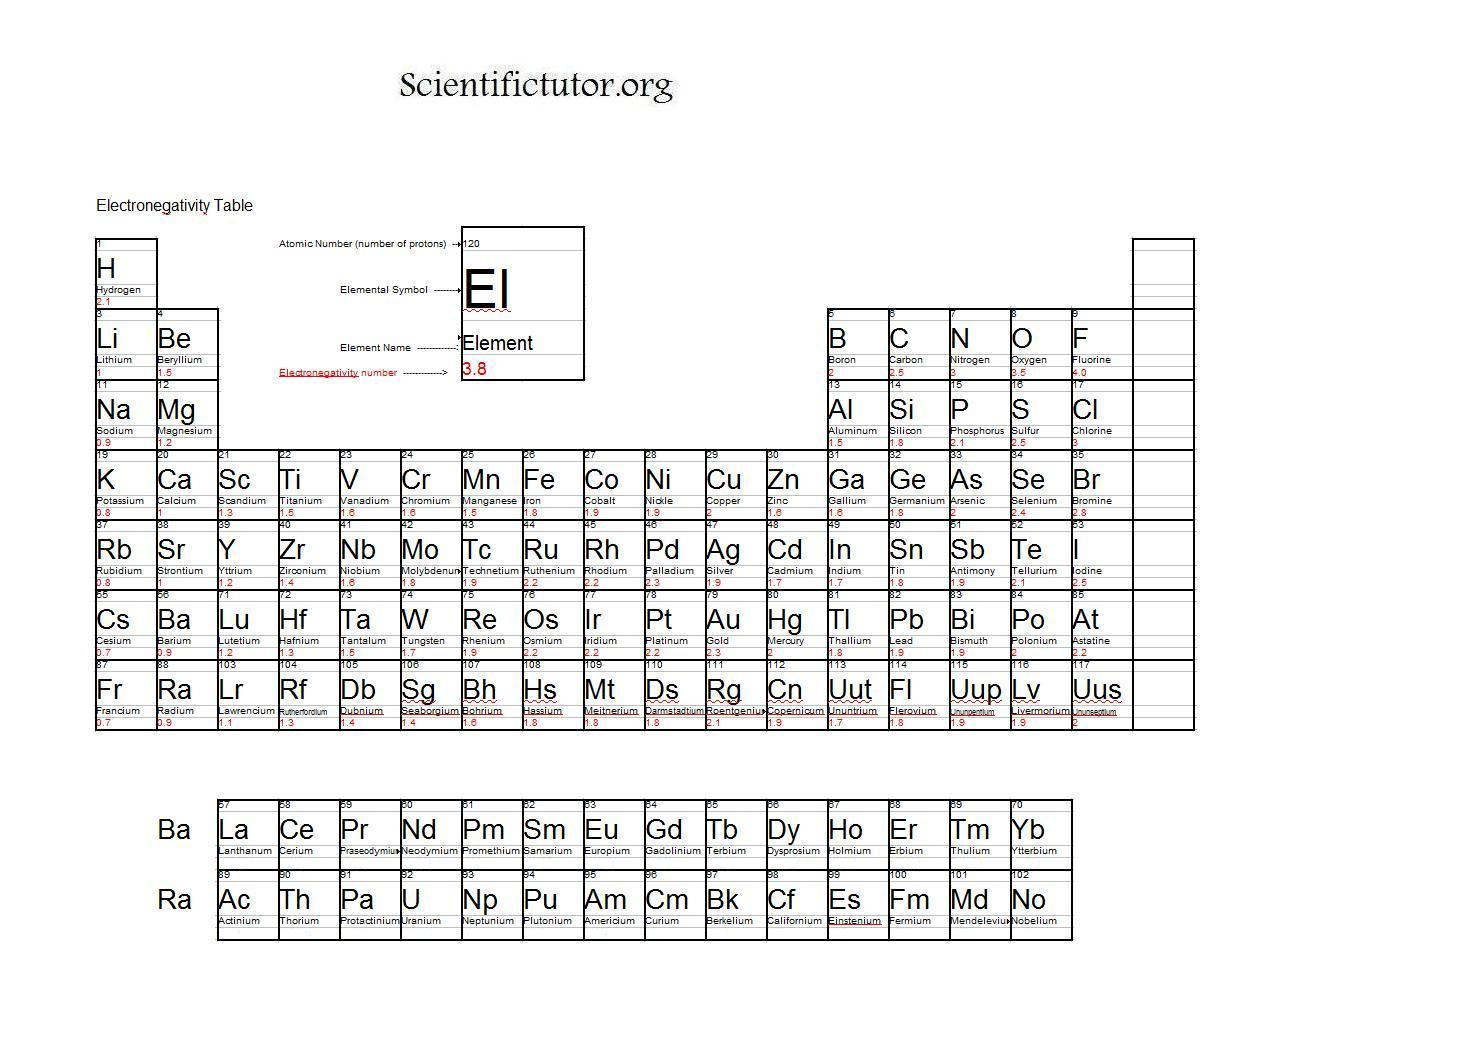 Chem finding the central atom scientific tutor practice problems find the central atom in the electron dot structure lewis structure using the method you find best here is a regular periodic table gamestrikefo Choice Image